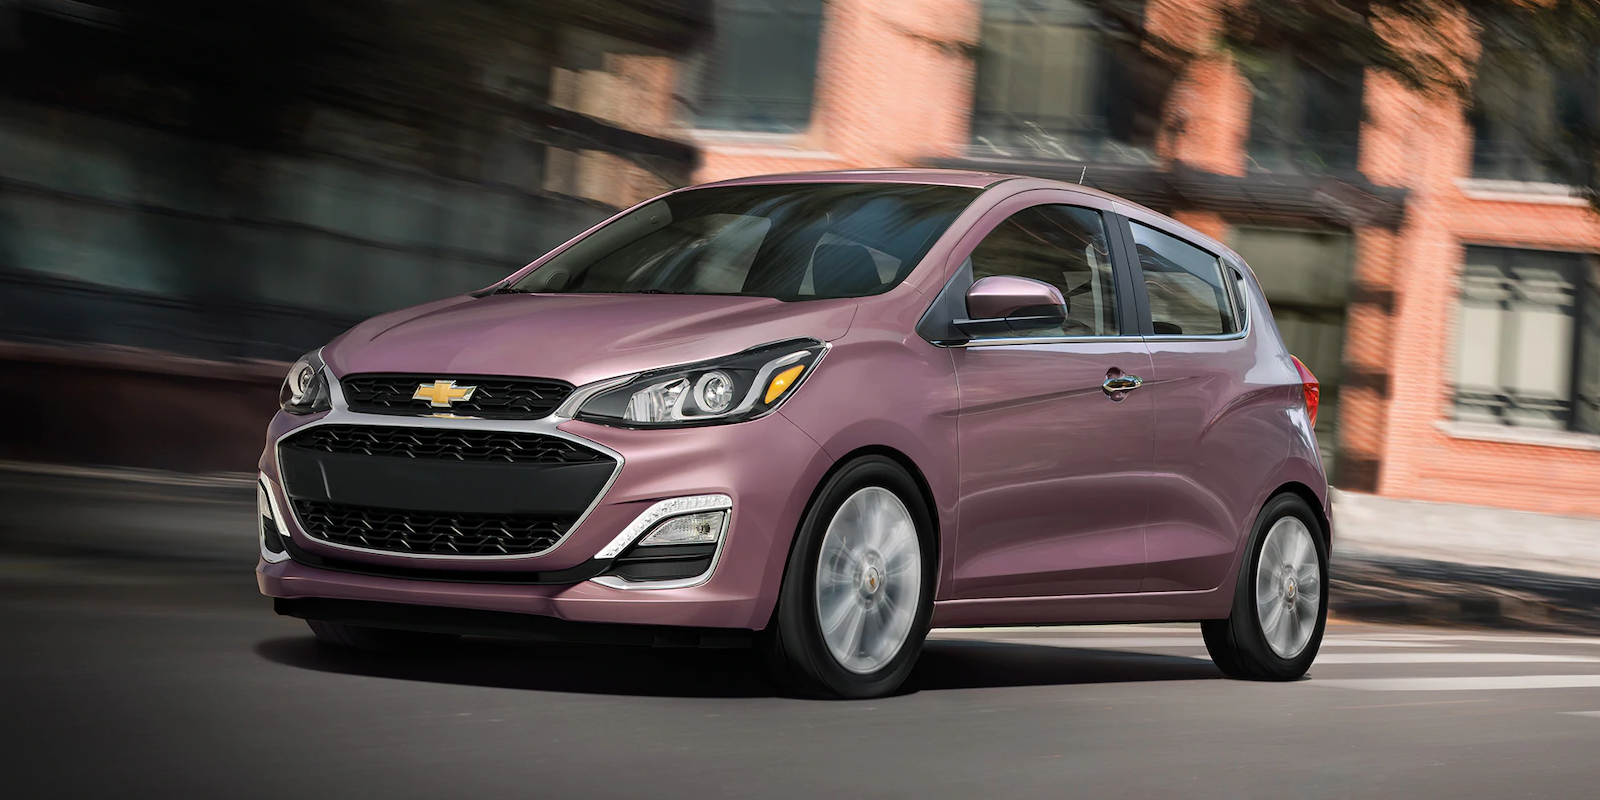 2019 Chevrolet Spark Passion Fruit Exterior Front Picture.png